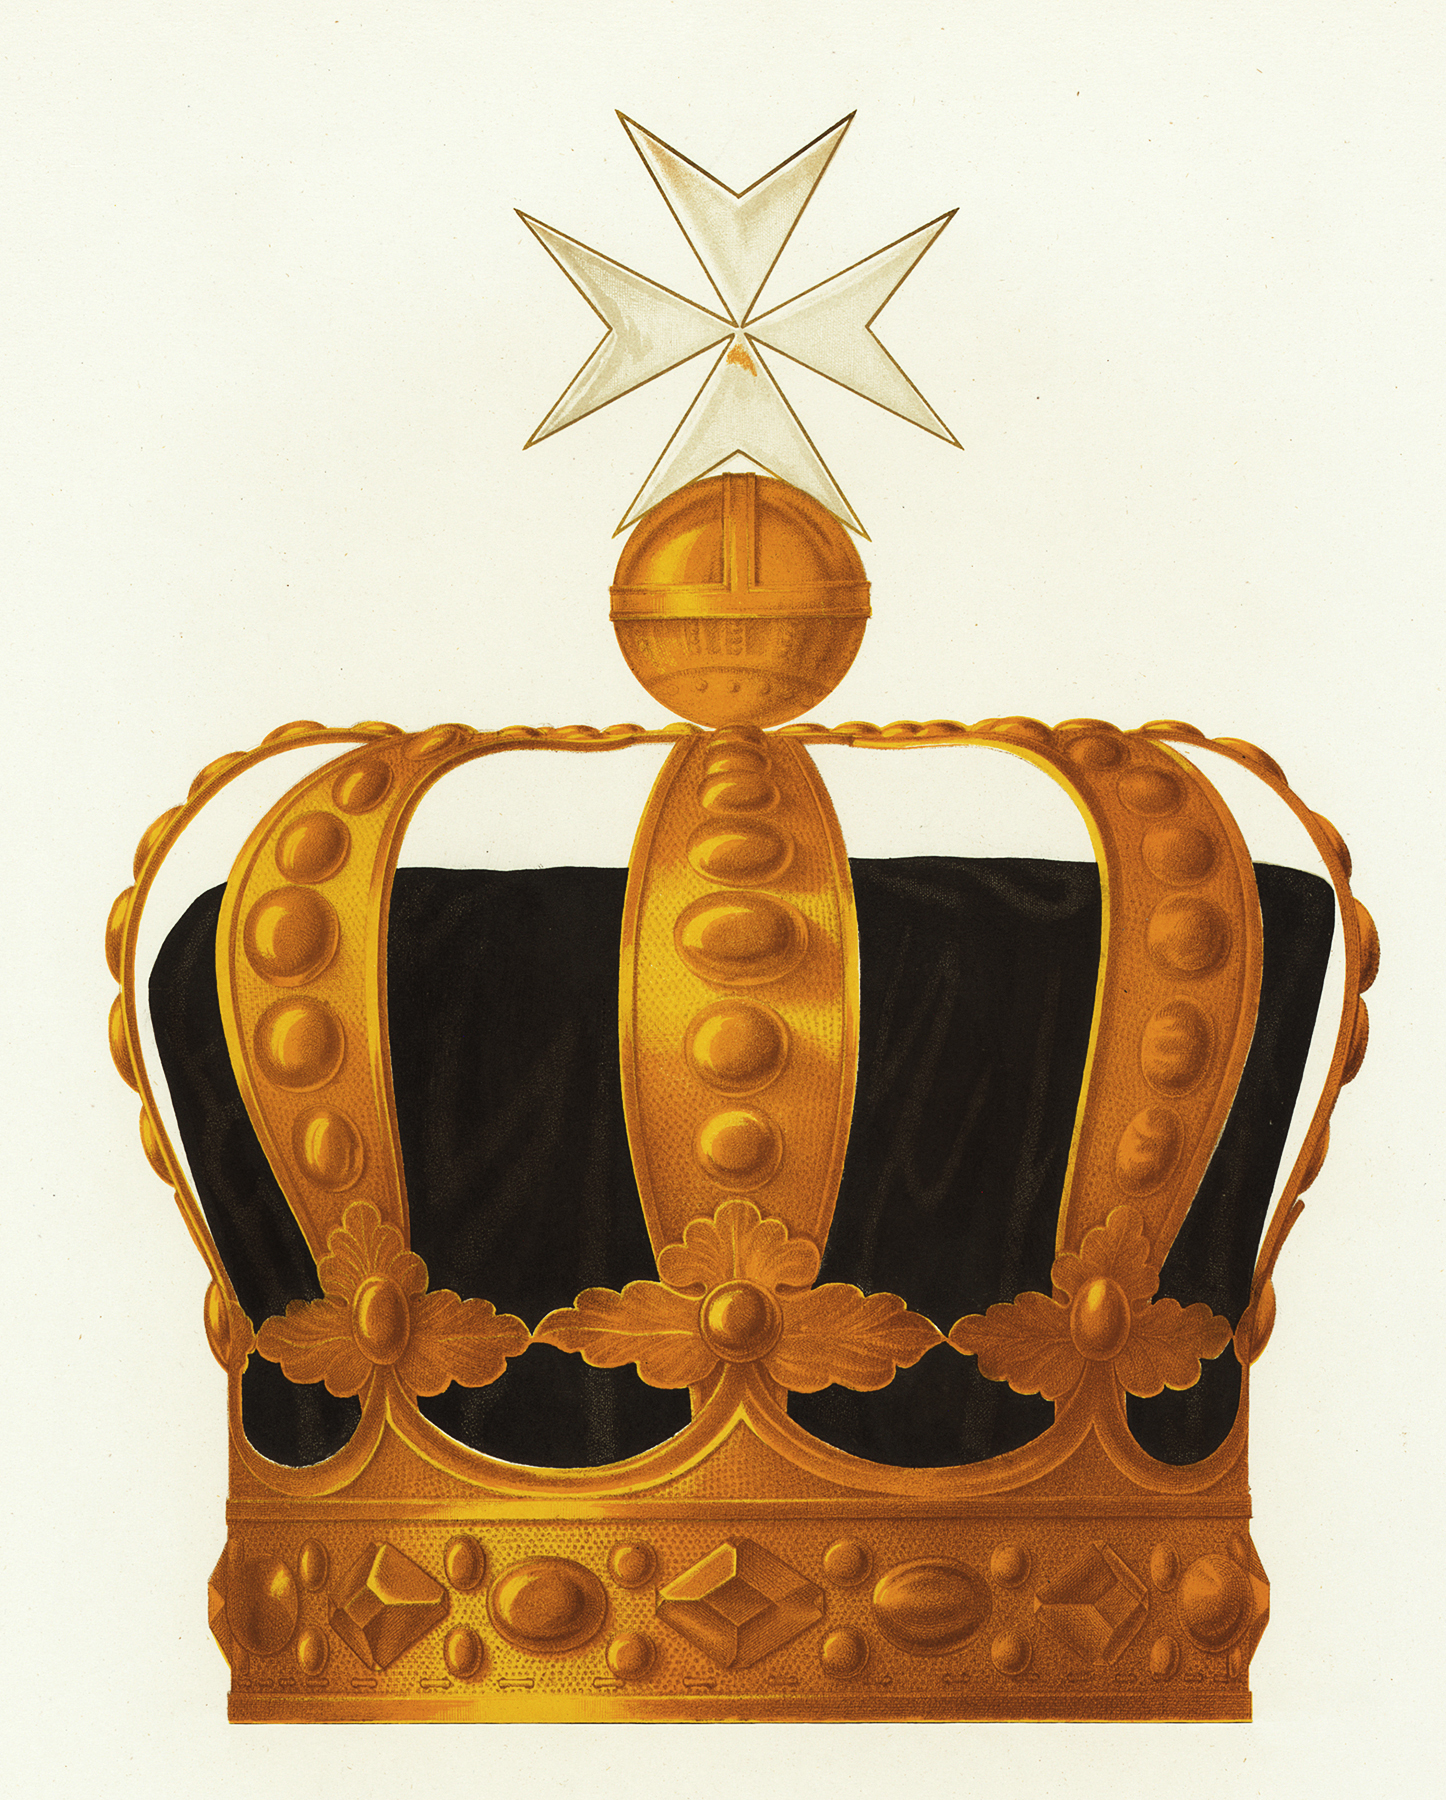 Vintage Golden Crown Stock Image